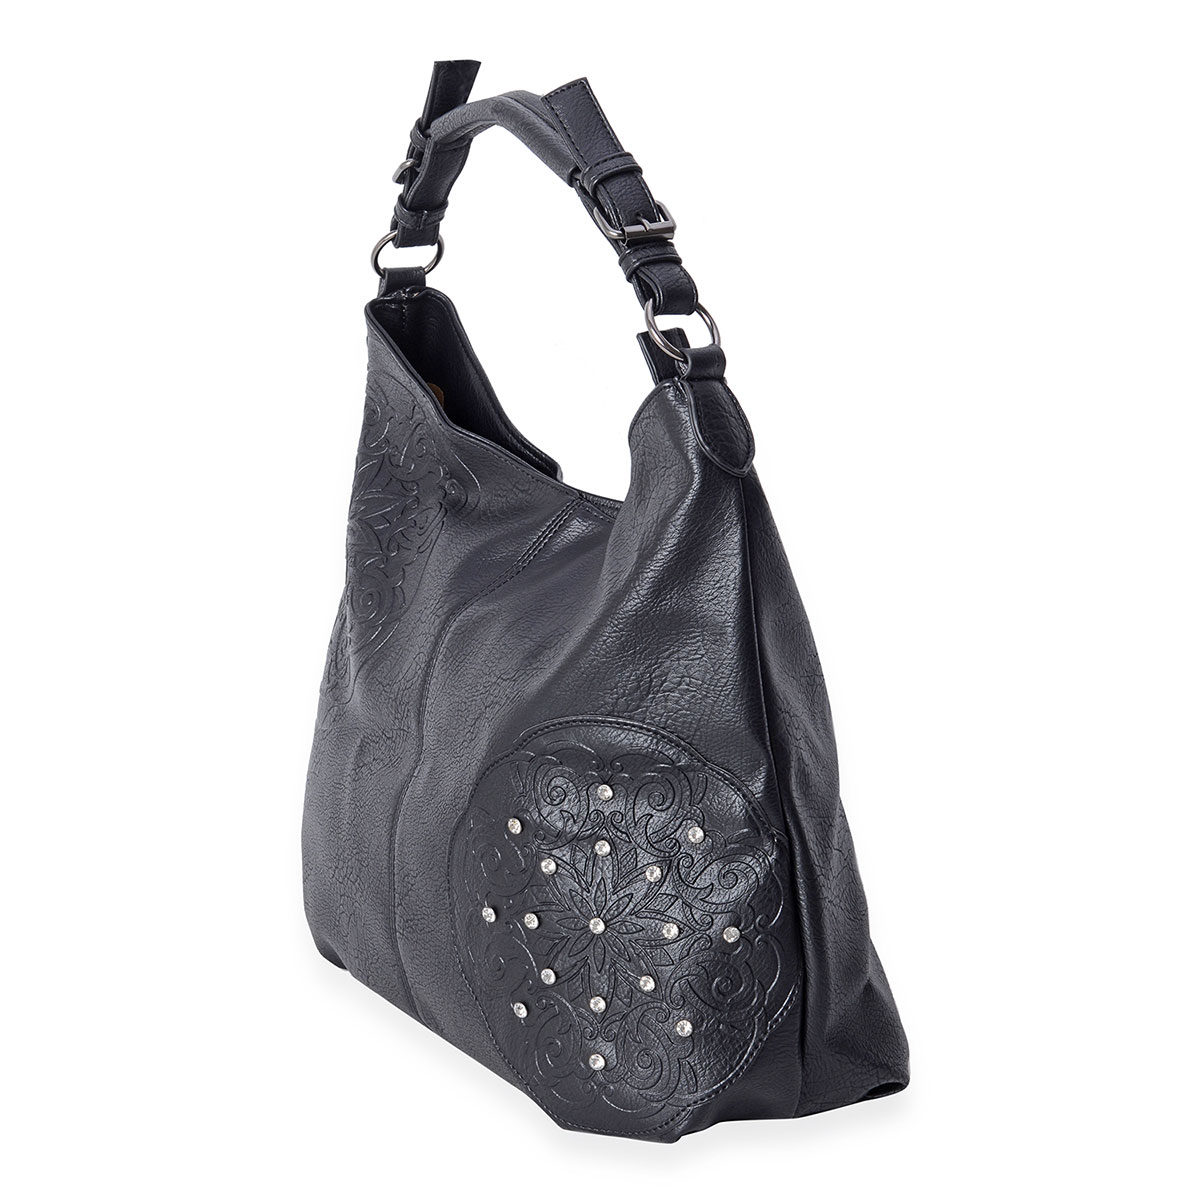 Black Fl Embossed Faux Leather Studded Hobo Bag 18x5 5x11 In